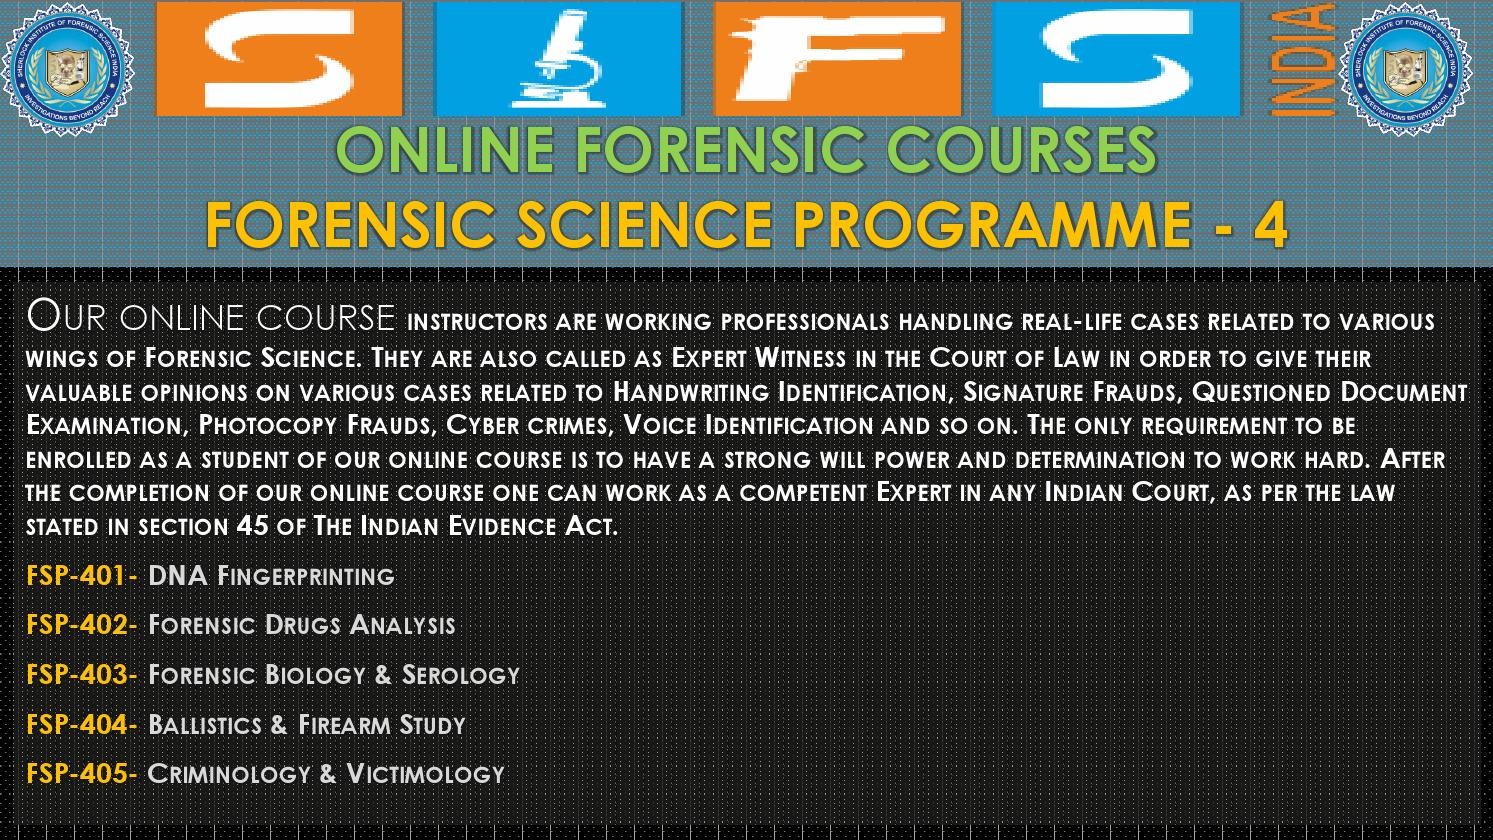 Sifs Institute For Forensic Science And Criminology By Sifsindia Issuu